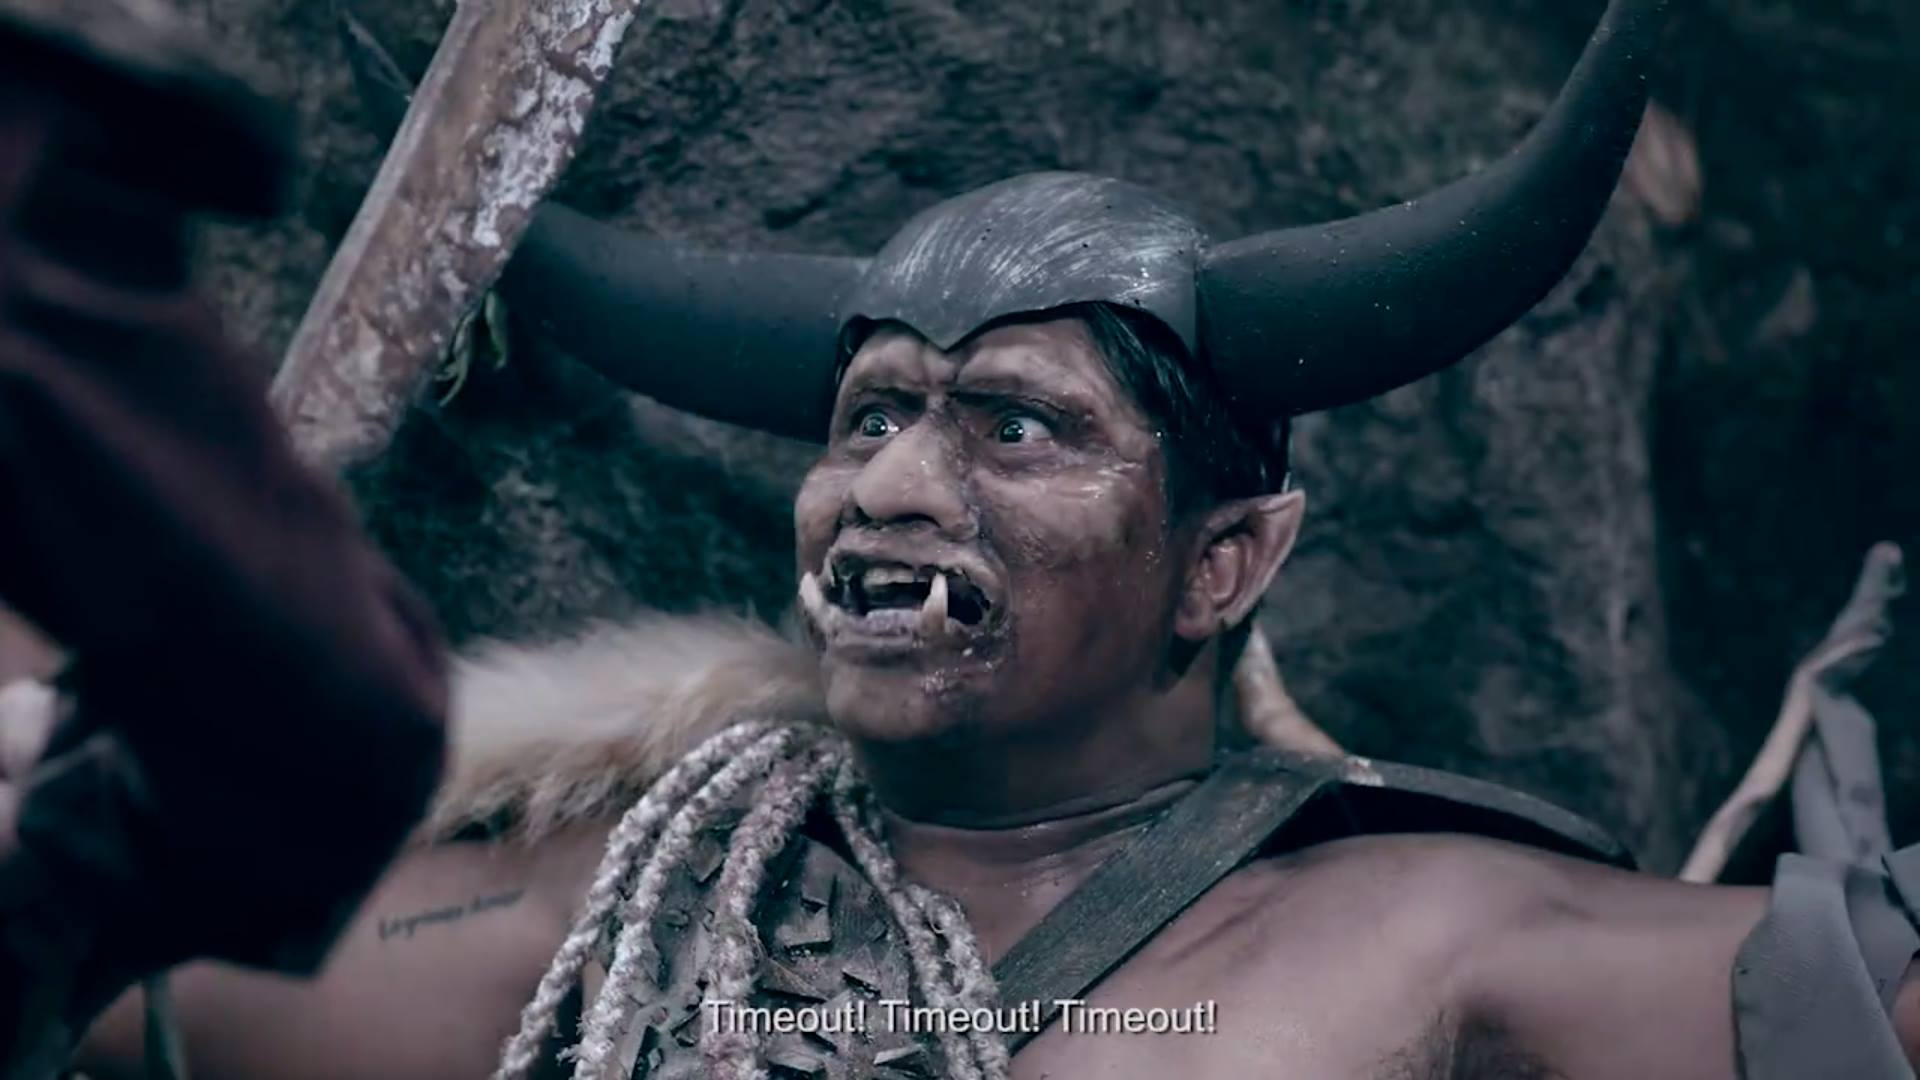 Cinemalaya 2016's Promotional Video Spoofs The Local Film Industry